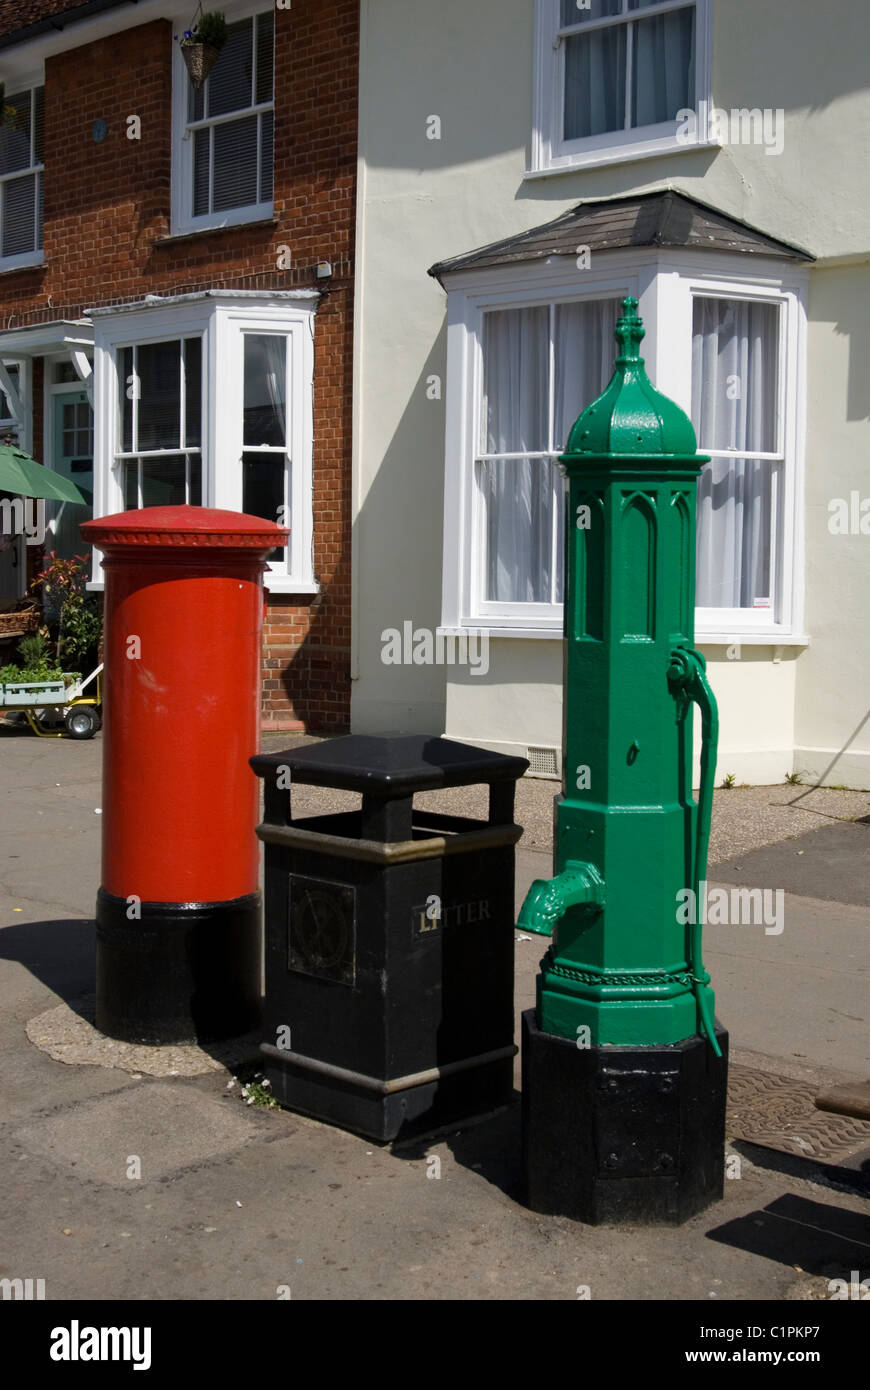 England, Essex, Thaxted, red letterbos, black litter bin, and green water pump - Stock Image